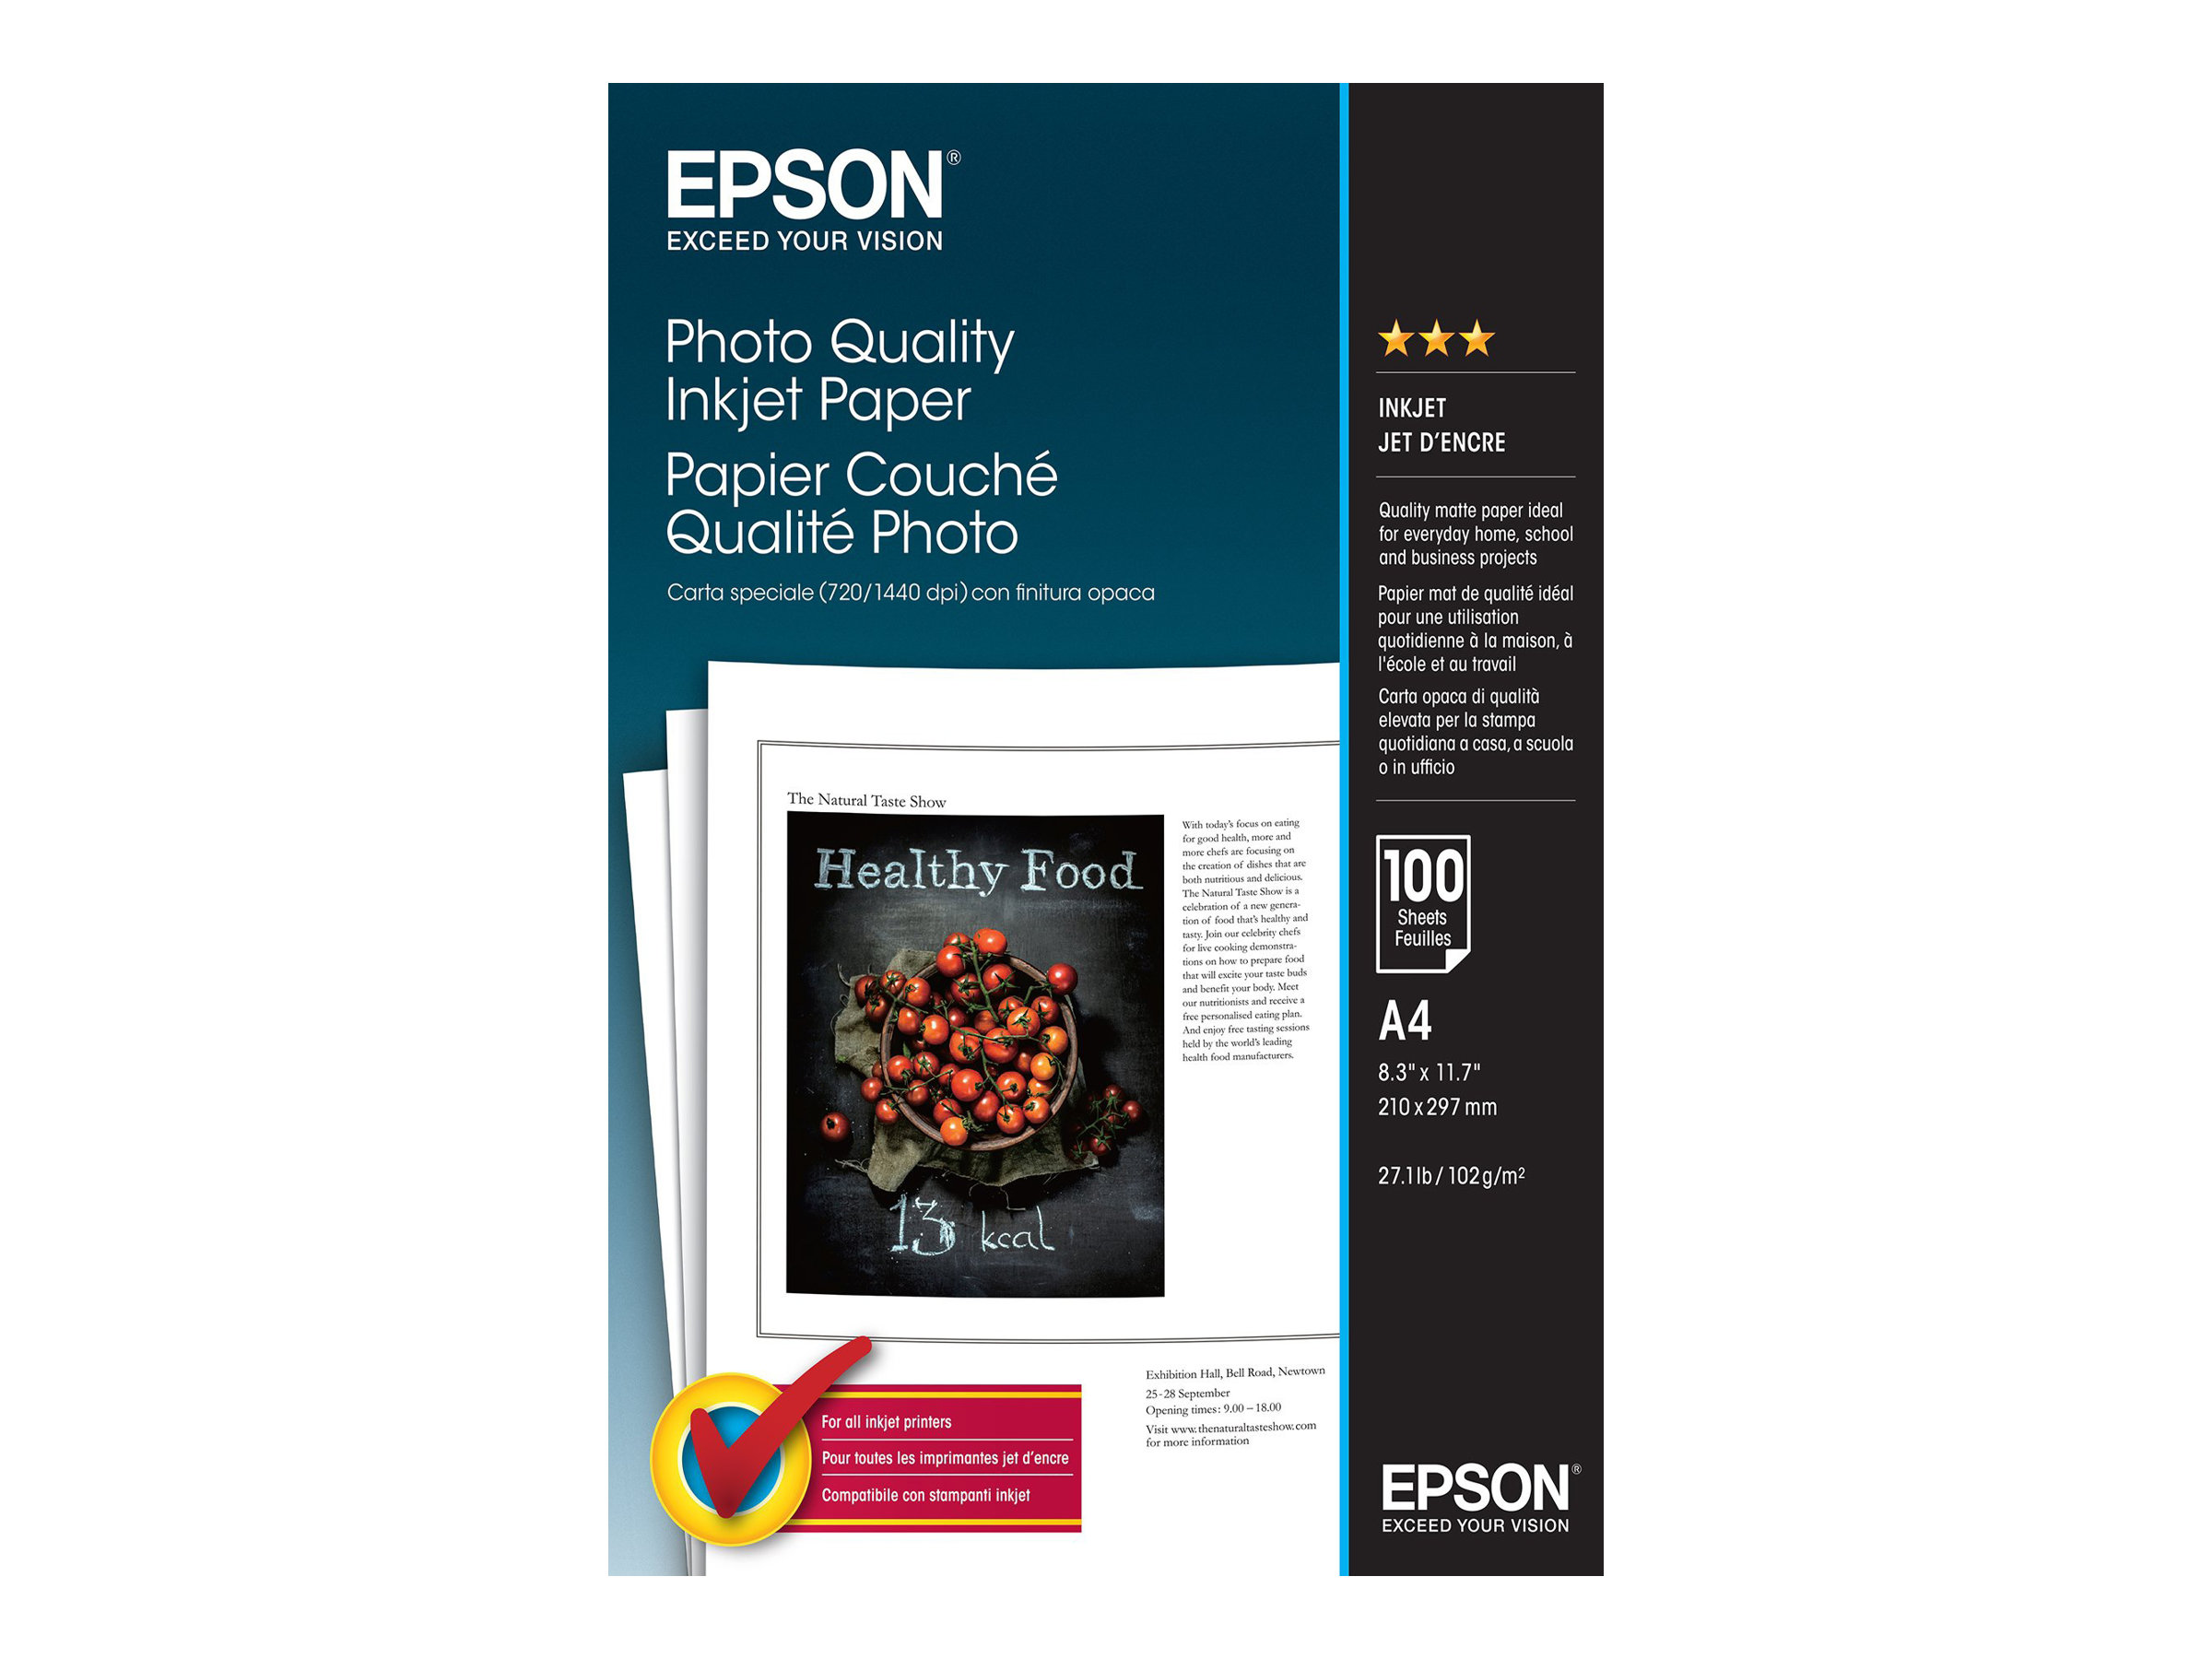 Epson Photo Quality Ink Jet Paper - Matt - beschichtet - Pure White - A4 (210 x 297 mm)